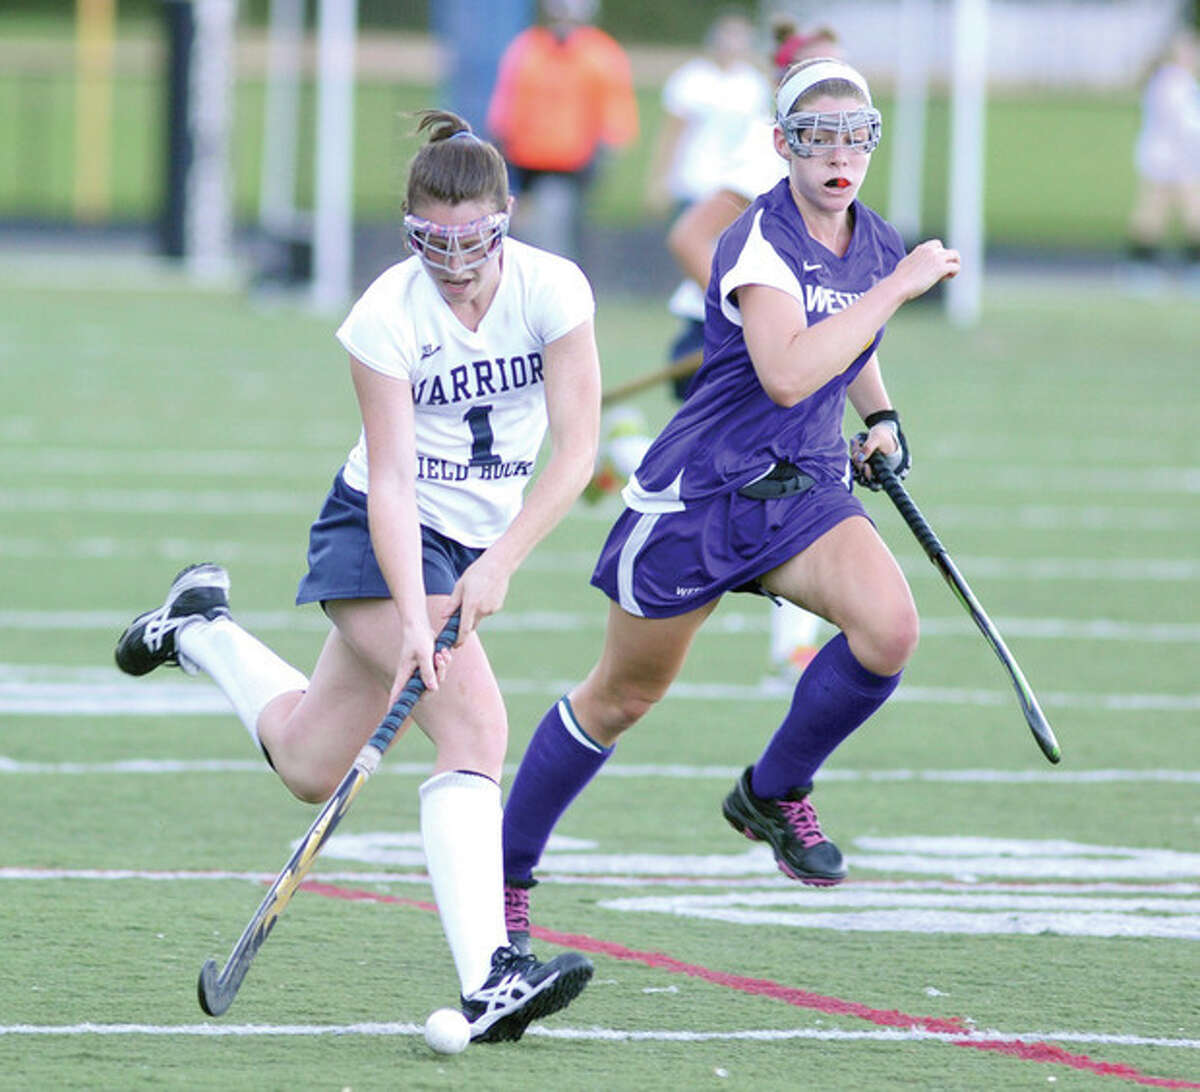 Hour photo/John Nash Wilton's Megan Cunningham, left, races up field as Westhill's Jackie Forde gives chase during Monday's FCIAC game at Fujitani Field in Wilton.